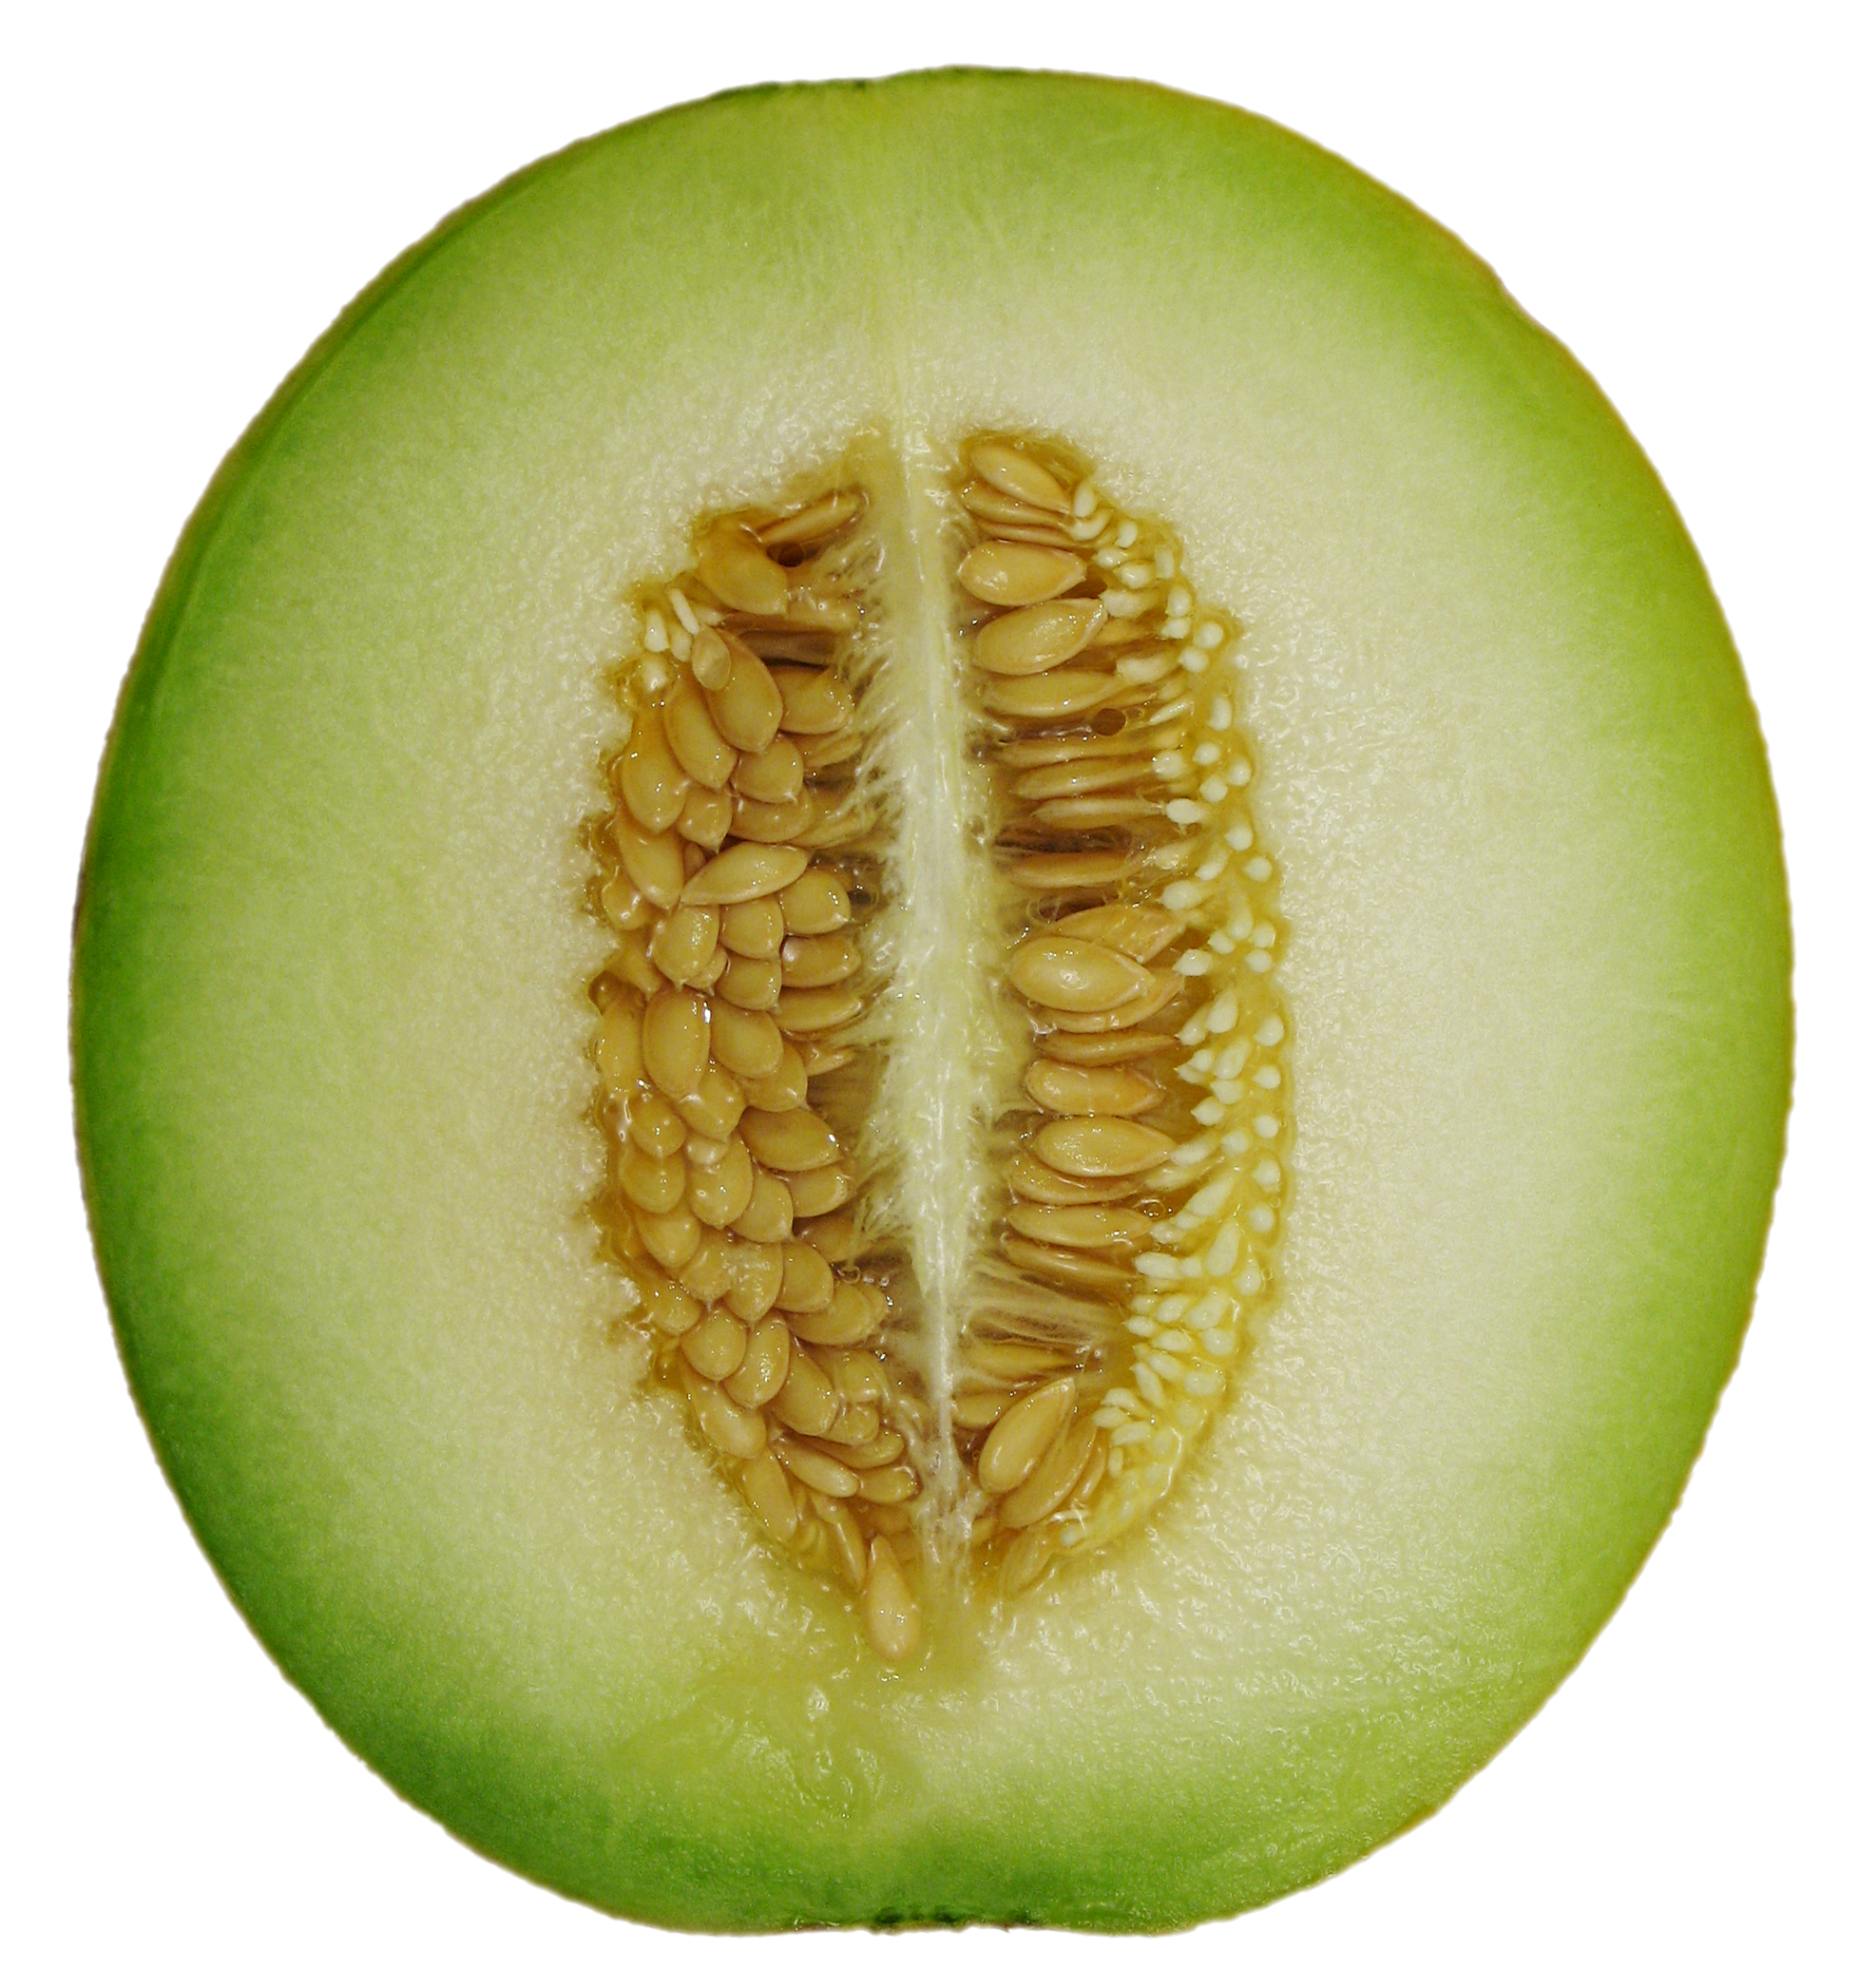 File Cantaloupe Melon Cross Section Png Wikipedia I should be ashamed of myself / but i never am, and since then / i haven't been ashamed of myself / but i never am. file cantaloupe melon cross section png